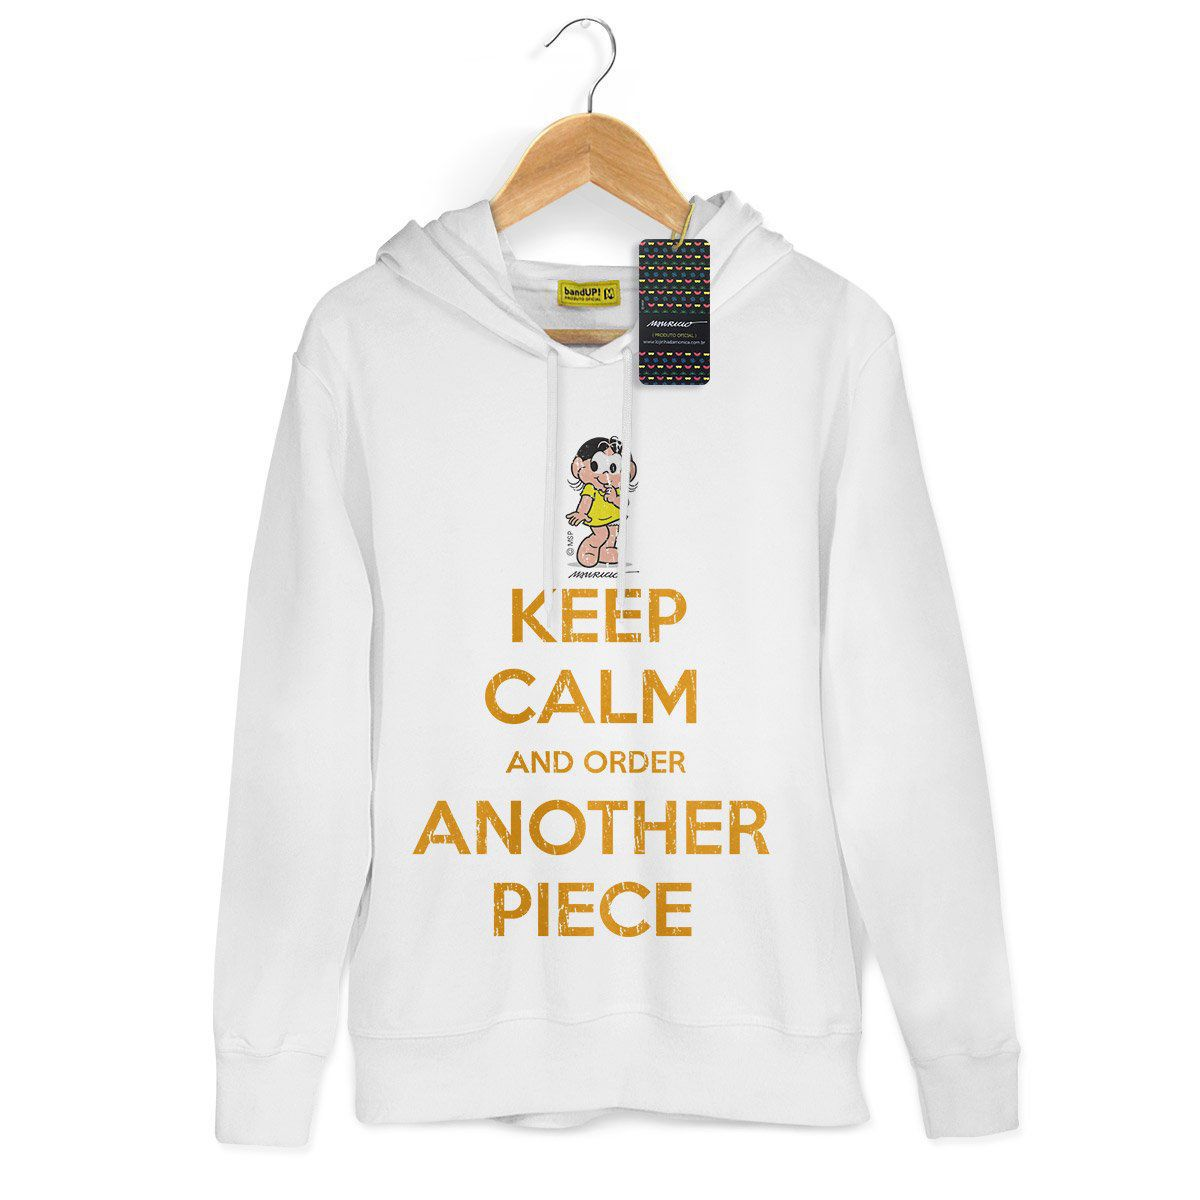 Moletom Branco Turma da Mônica Cool Keep Calm And Order Another Piece